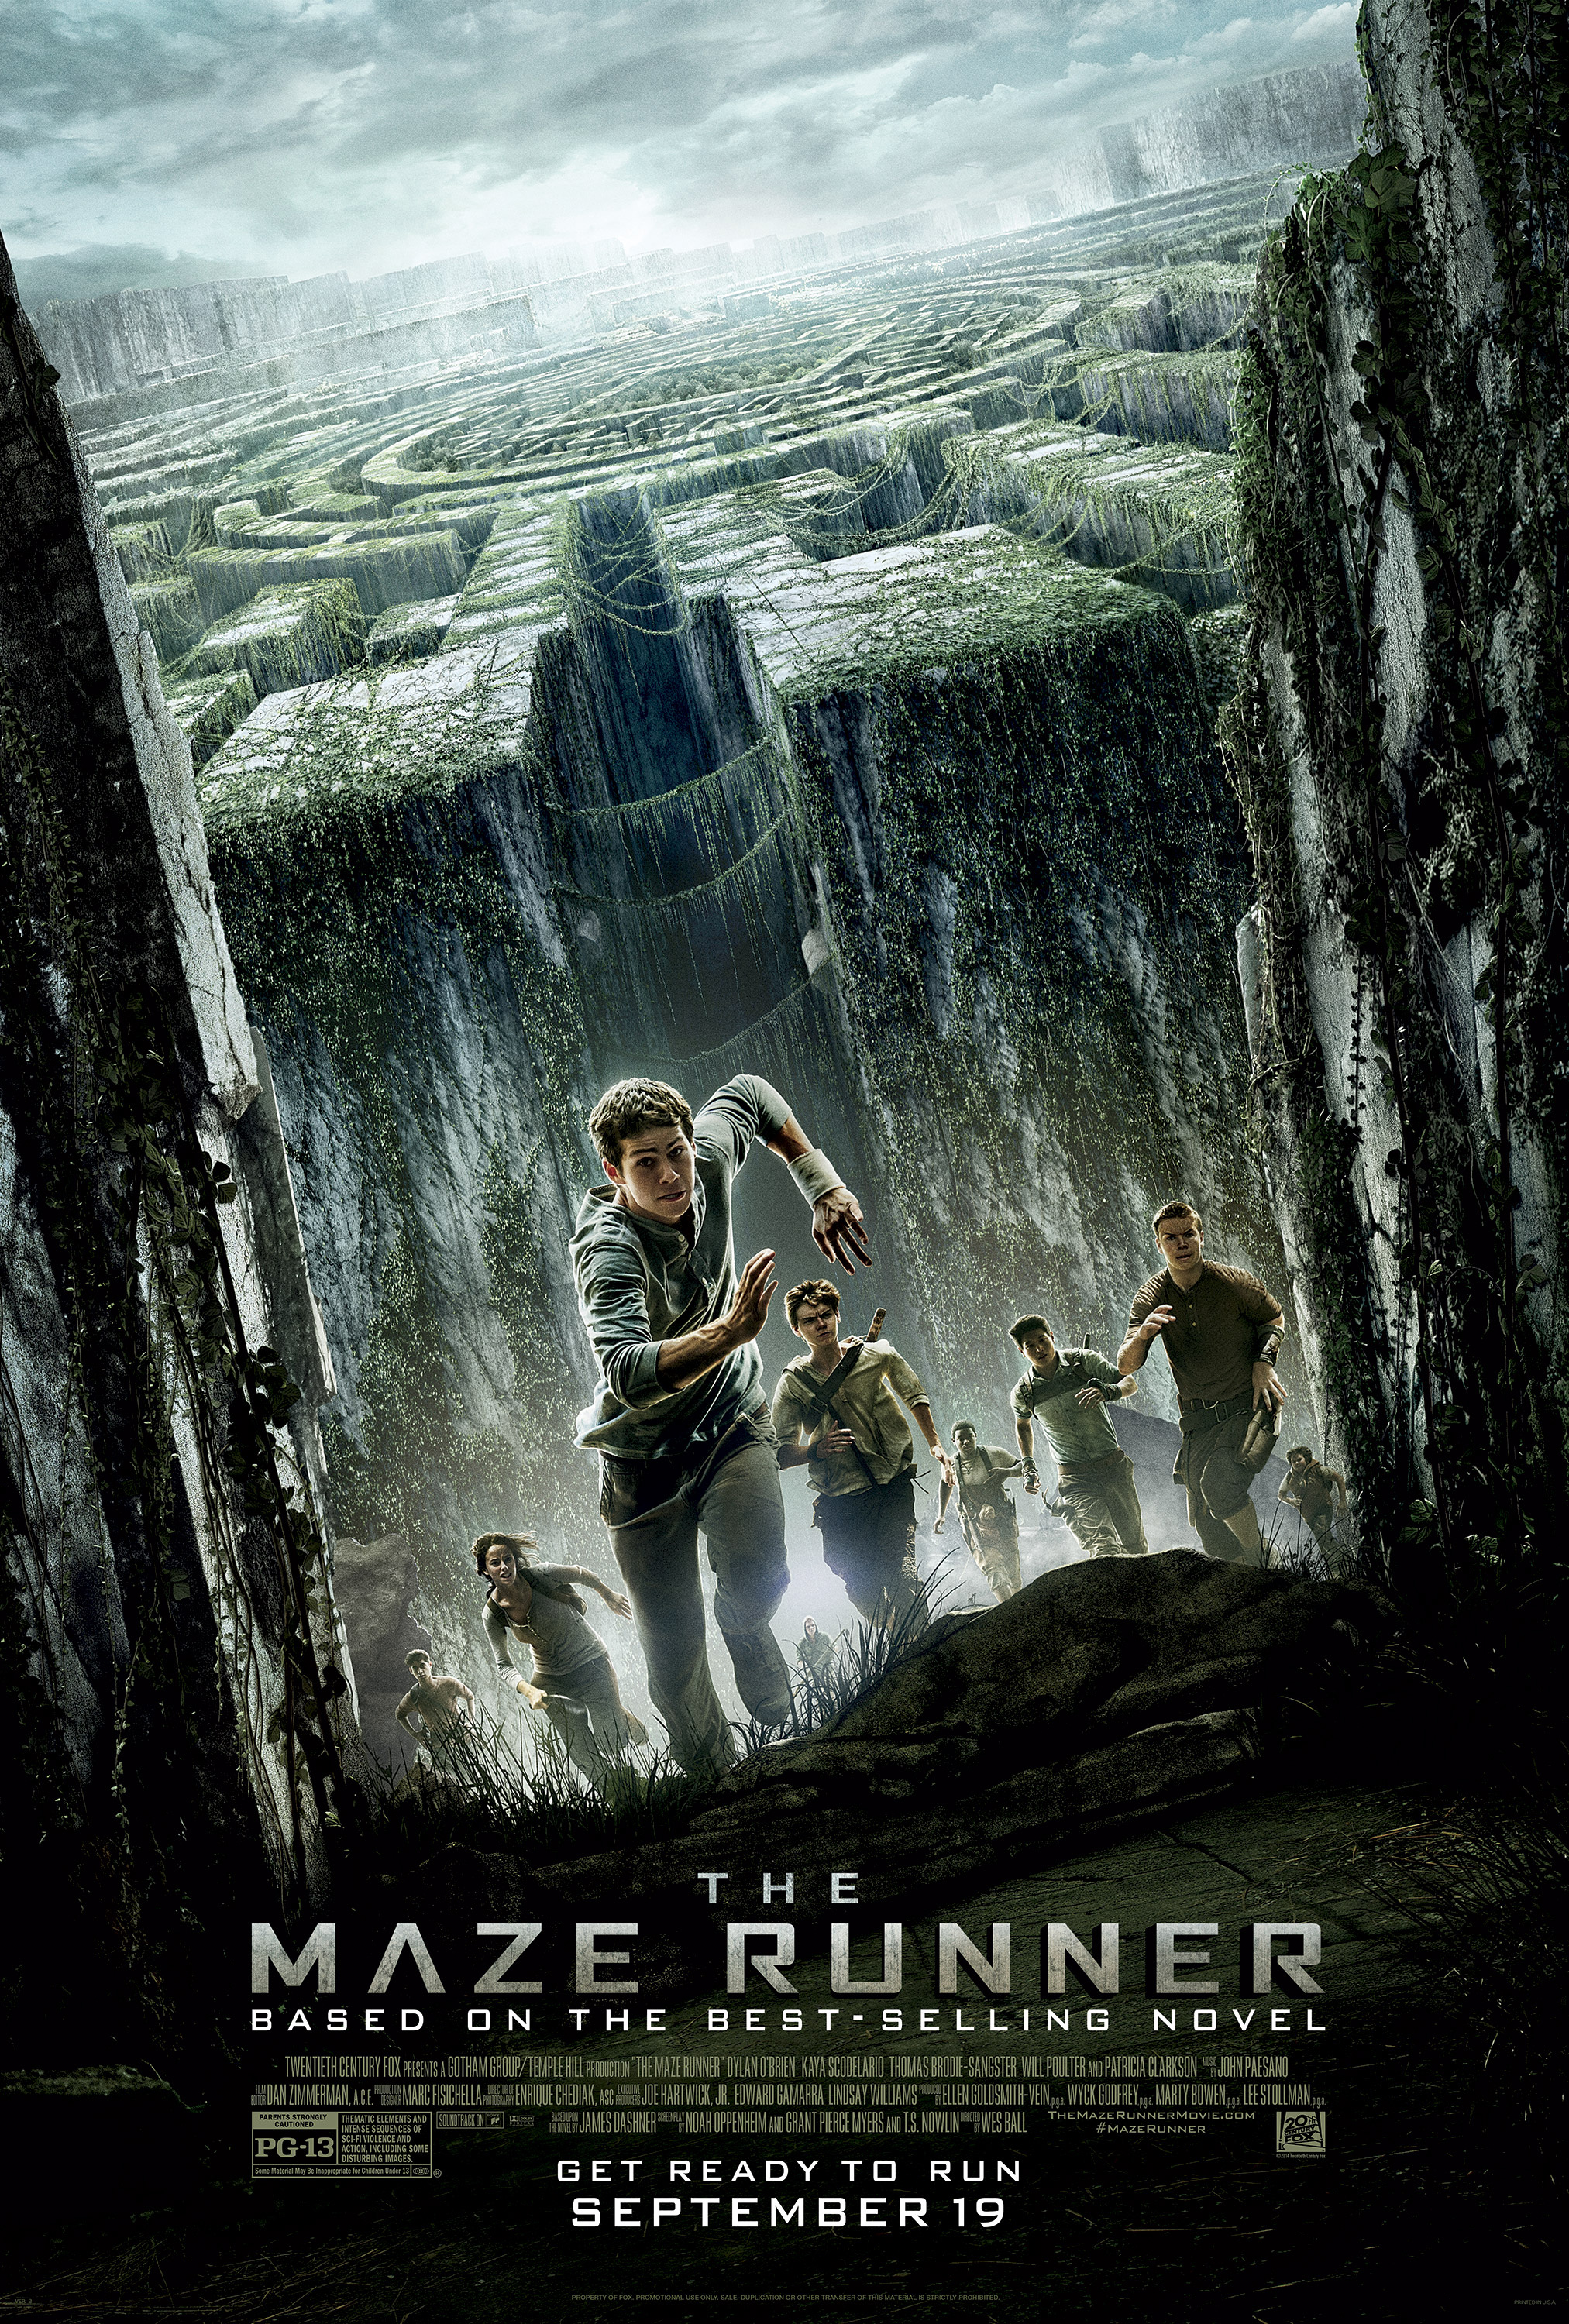 The Maze Runner Preview and Giveaway – Win $25 Visa #MazeRuner